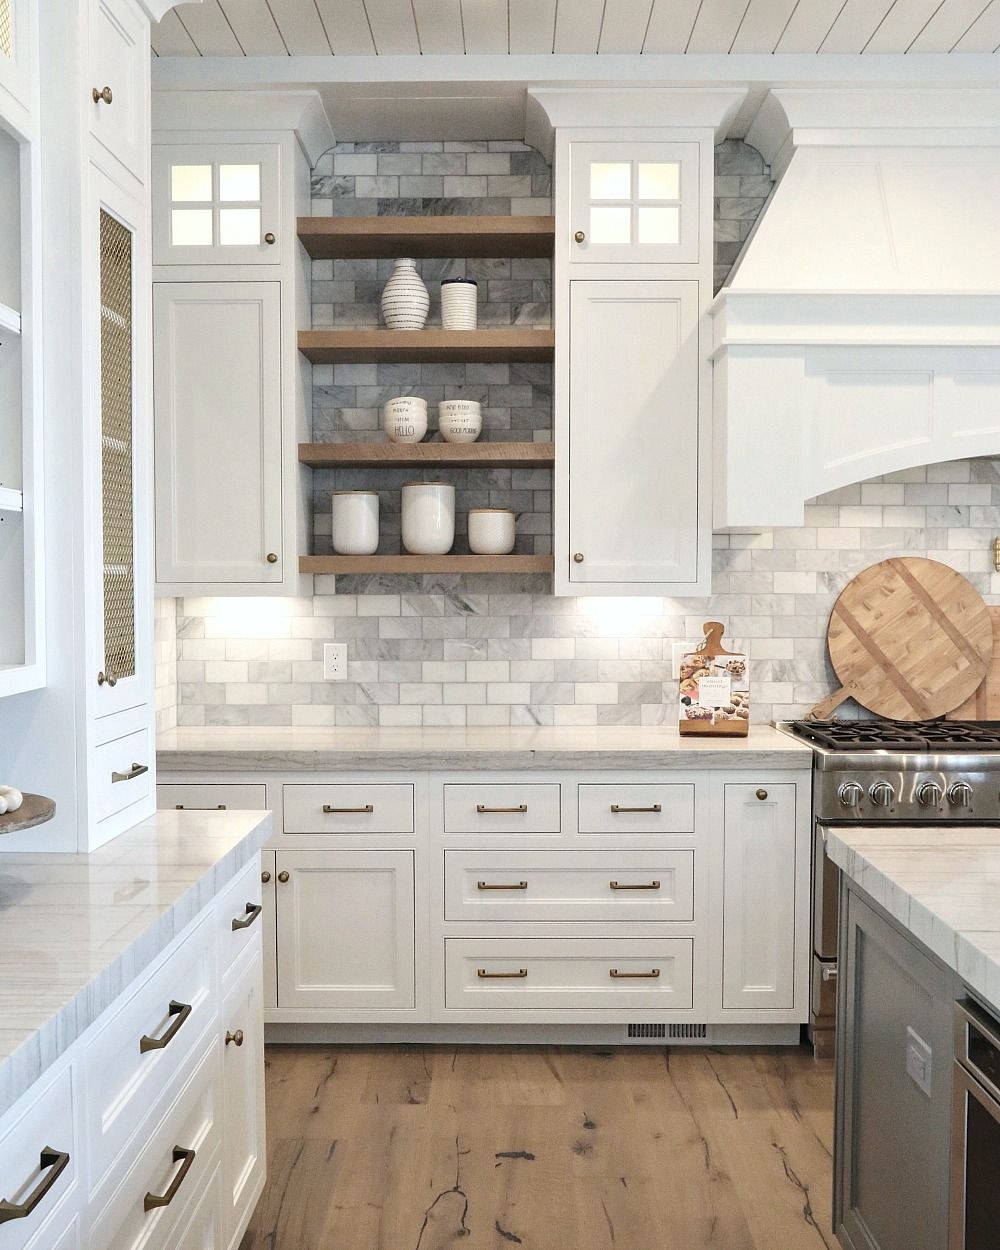 painted kitchen cabinets mixed with wood stained floating shelves between installing peel and stick tiles bathroom shelf support metal pins target wall bookshelves white mounted